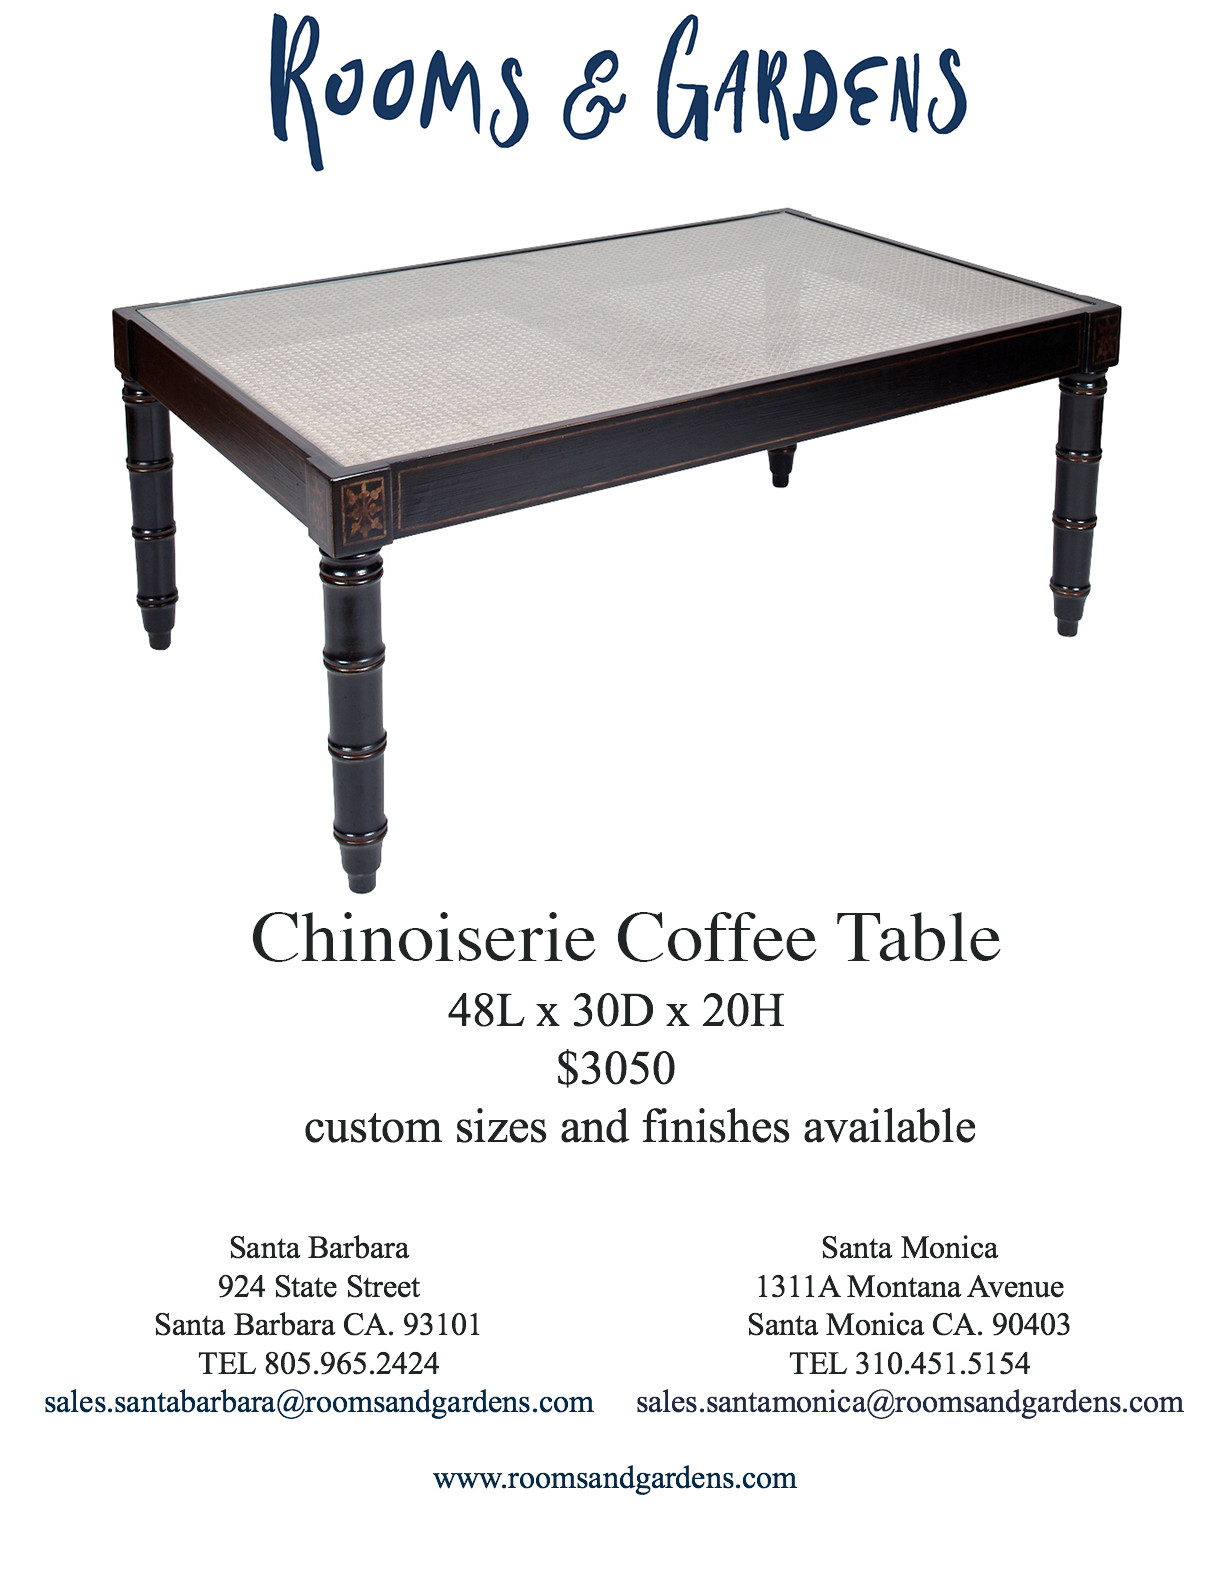 Coffee Tables — Rooms & Gardens